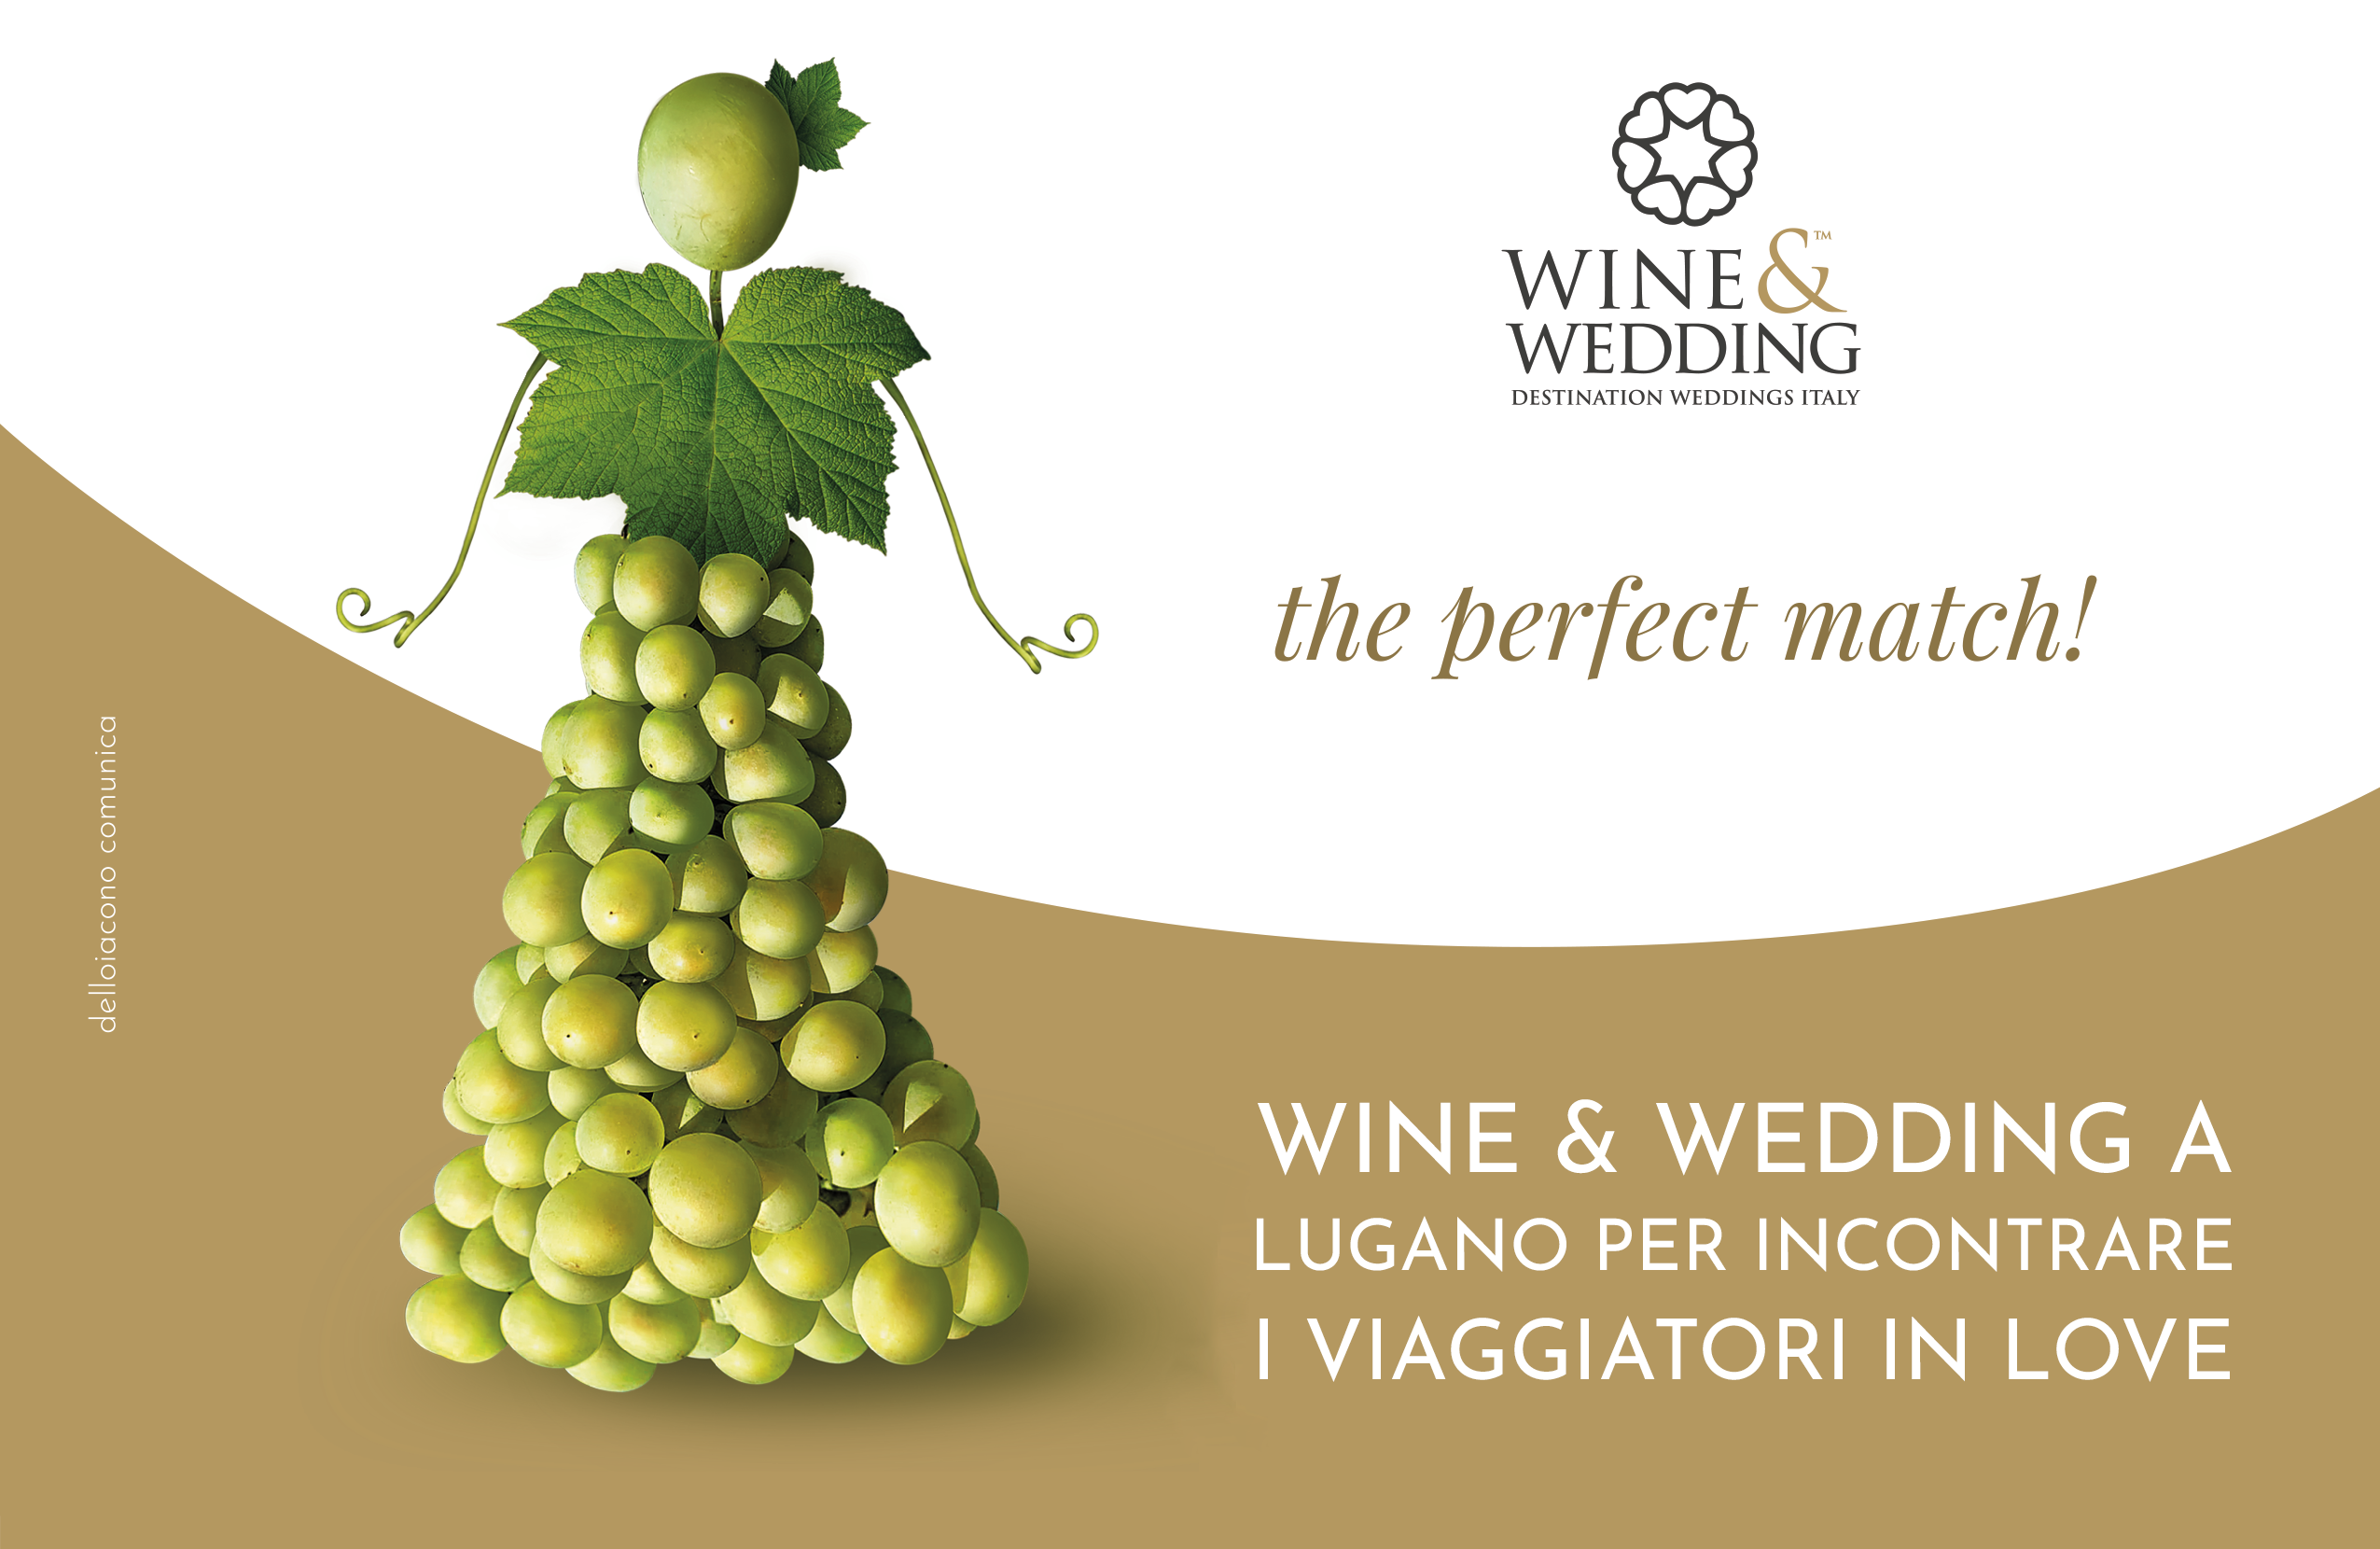 Wine & Wedding a Lugano per incontrare i Viaggiatori In Love